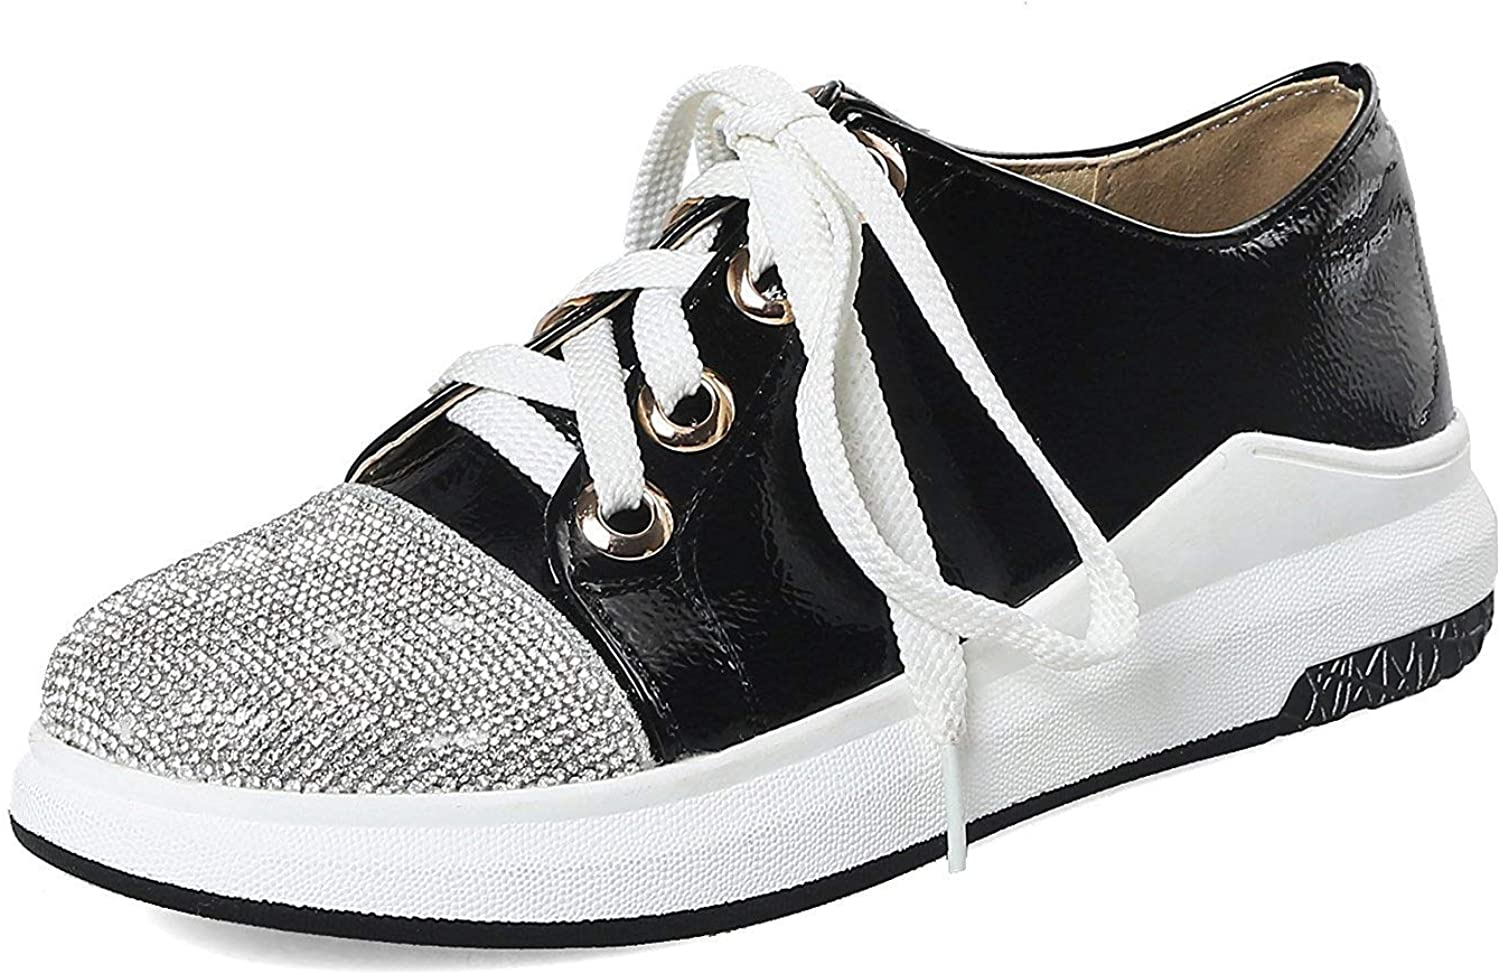 Unm Women's Platform Sneakers with Rhinestone - Lace up Round Toe Mid Top - Flats Casual Outdoor